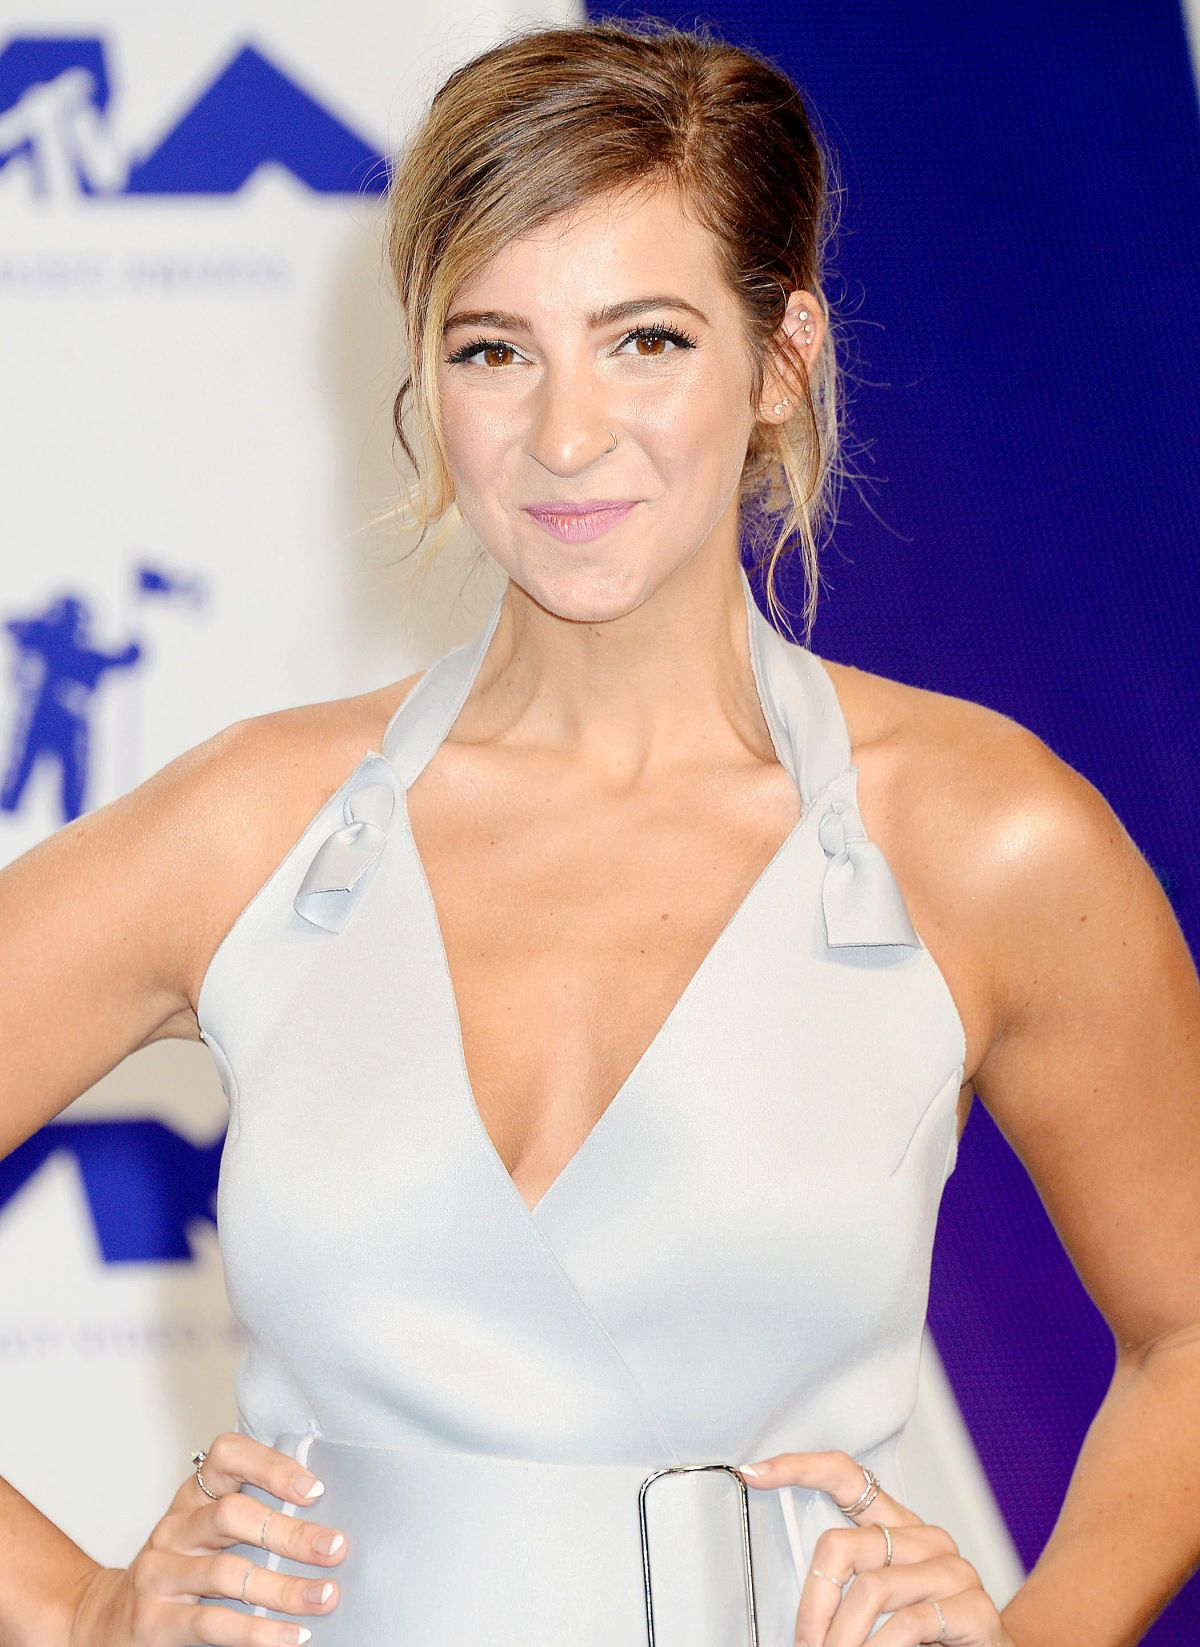 GABBIE HANNA at 2017 MTV Video Music Awards in Los Angeles 08/27/2017